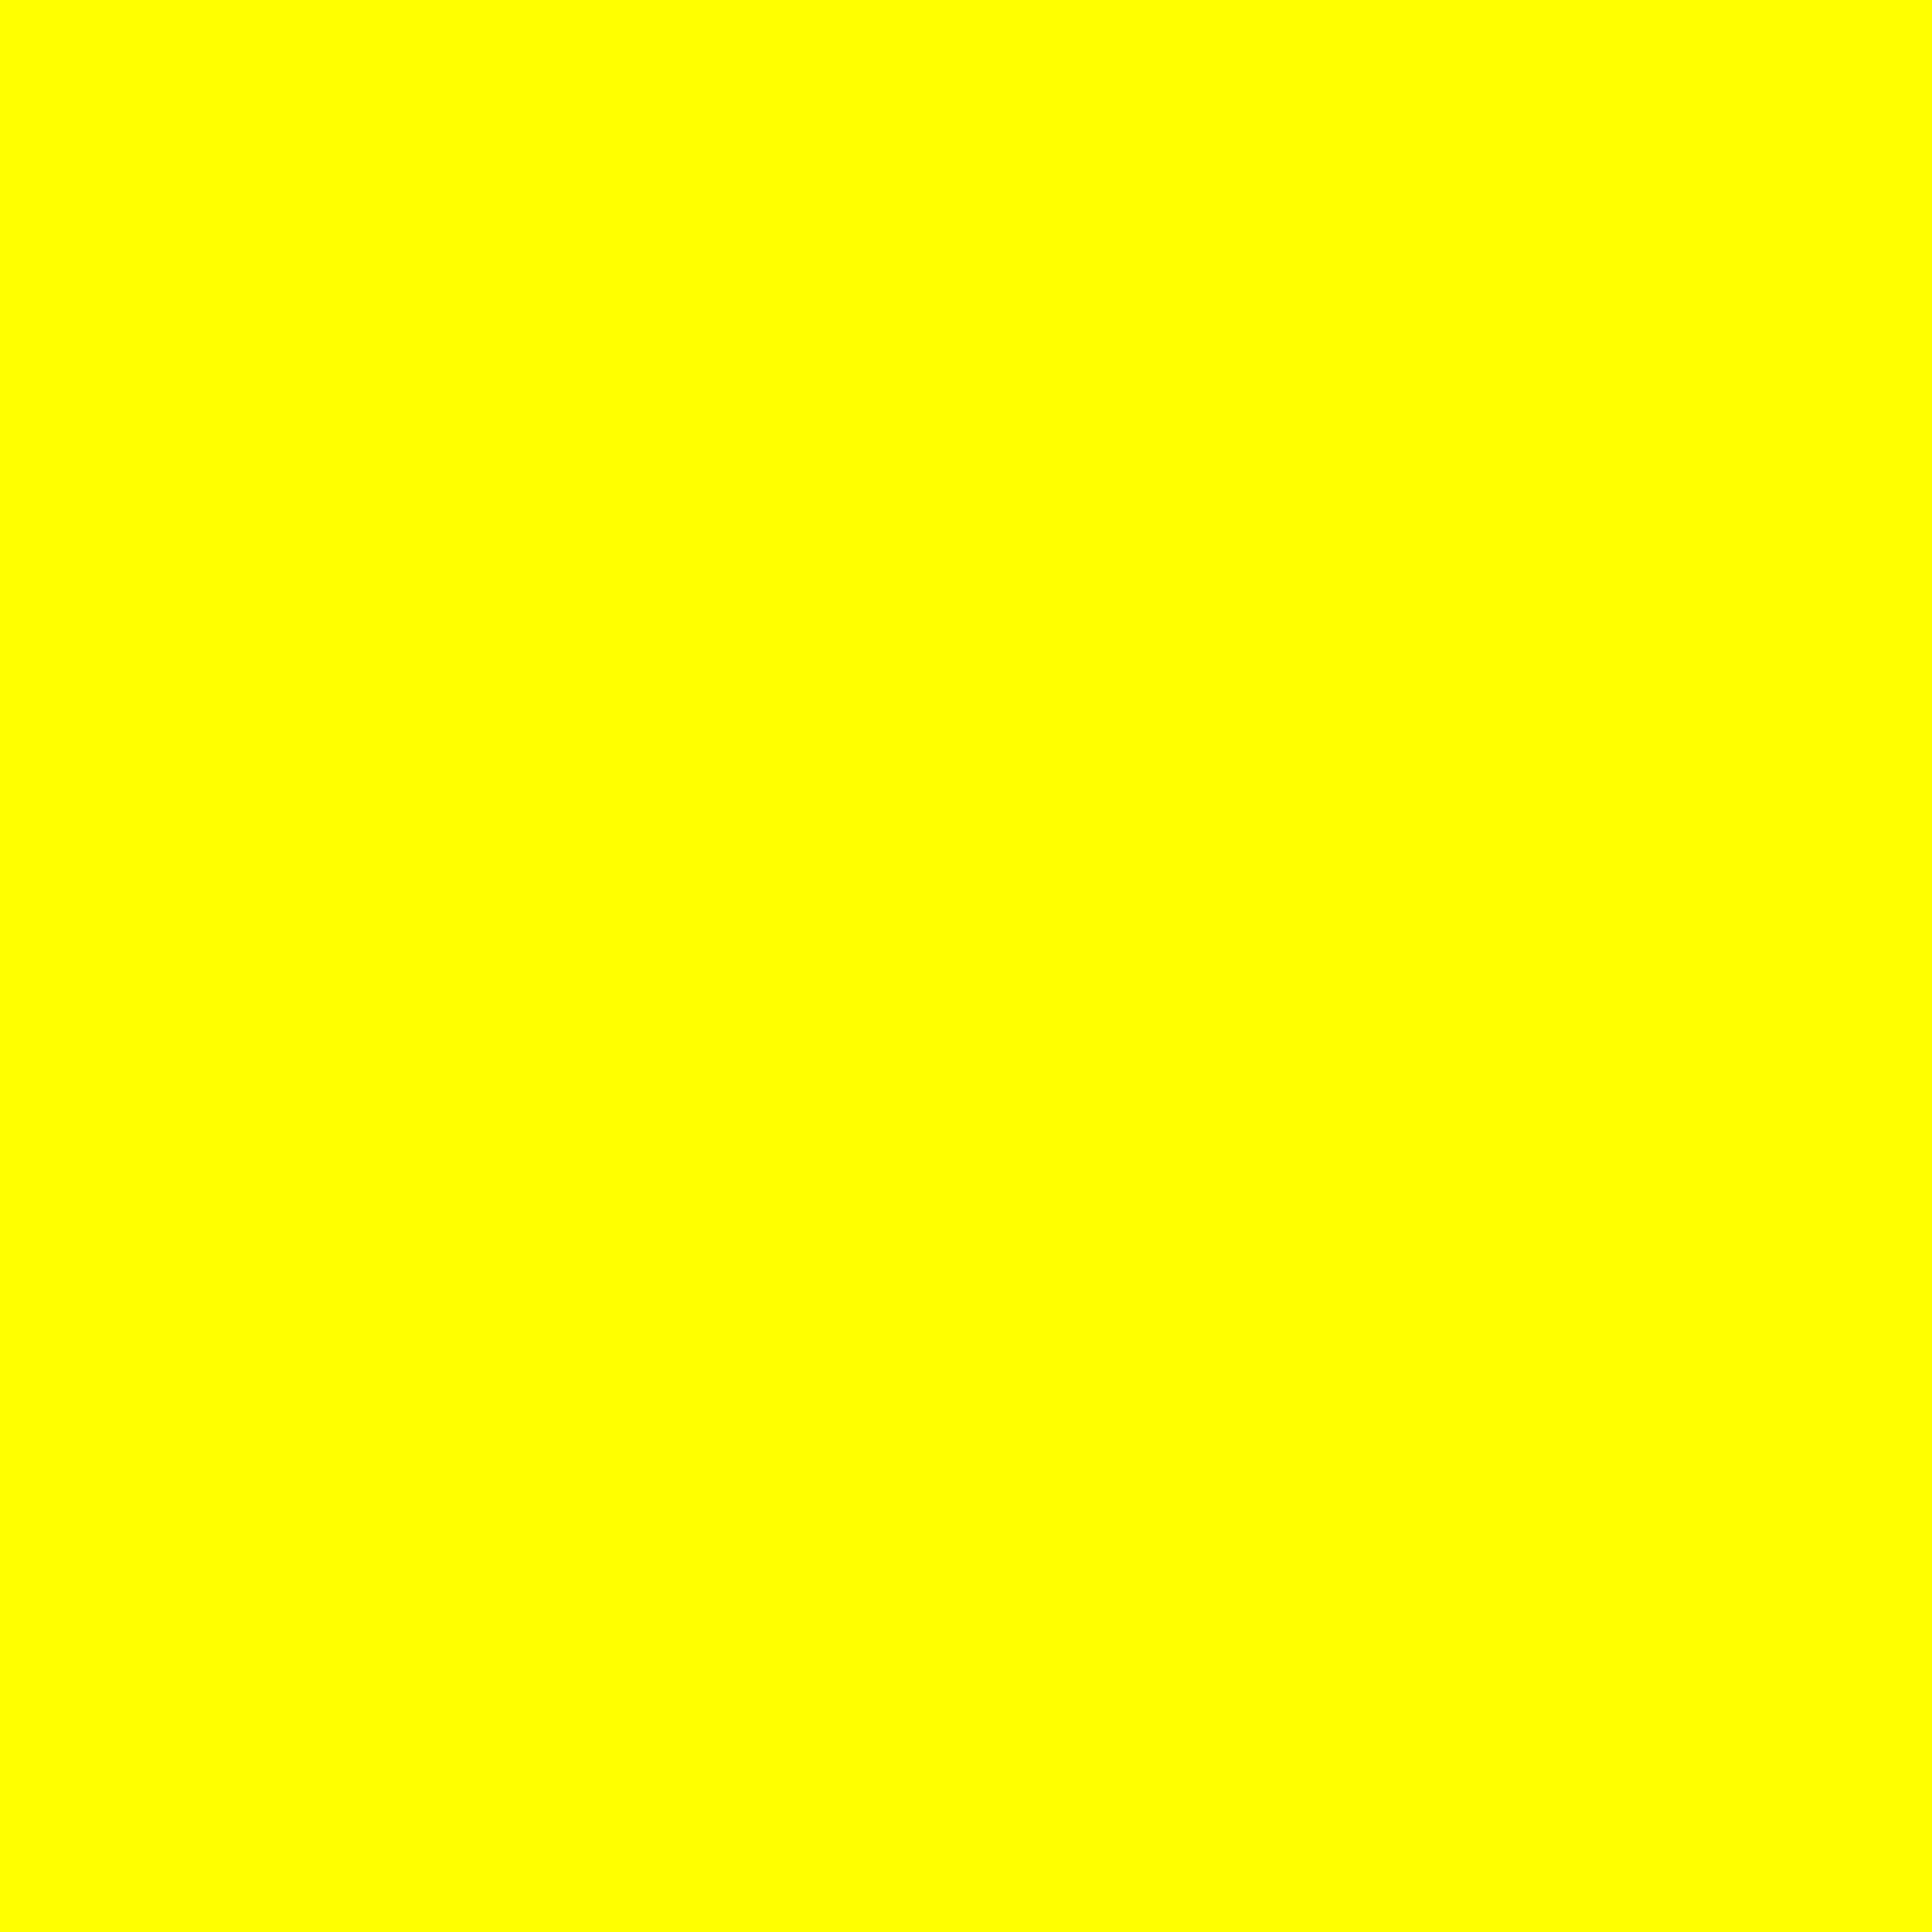 0000ff color square yellow clip art sweet clip art rh m sweetclipart com yellow clipart black and white yellow clipart free